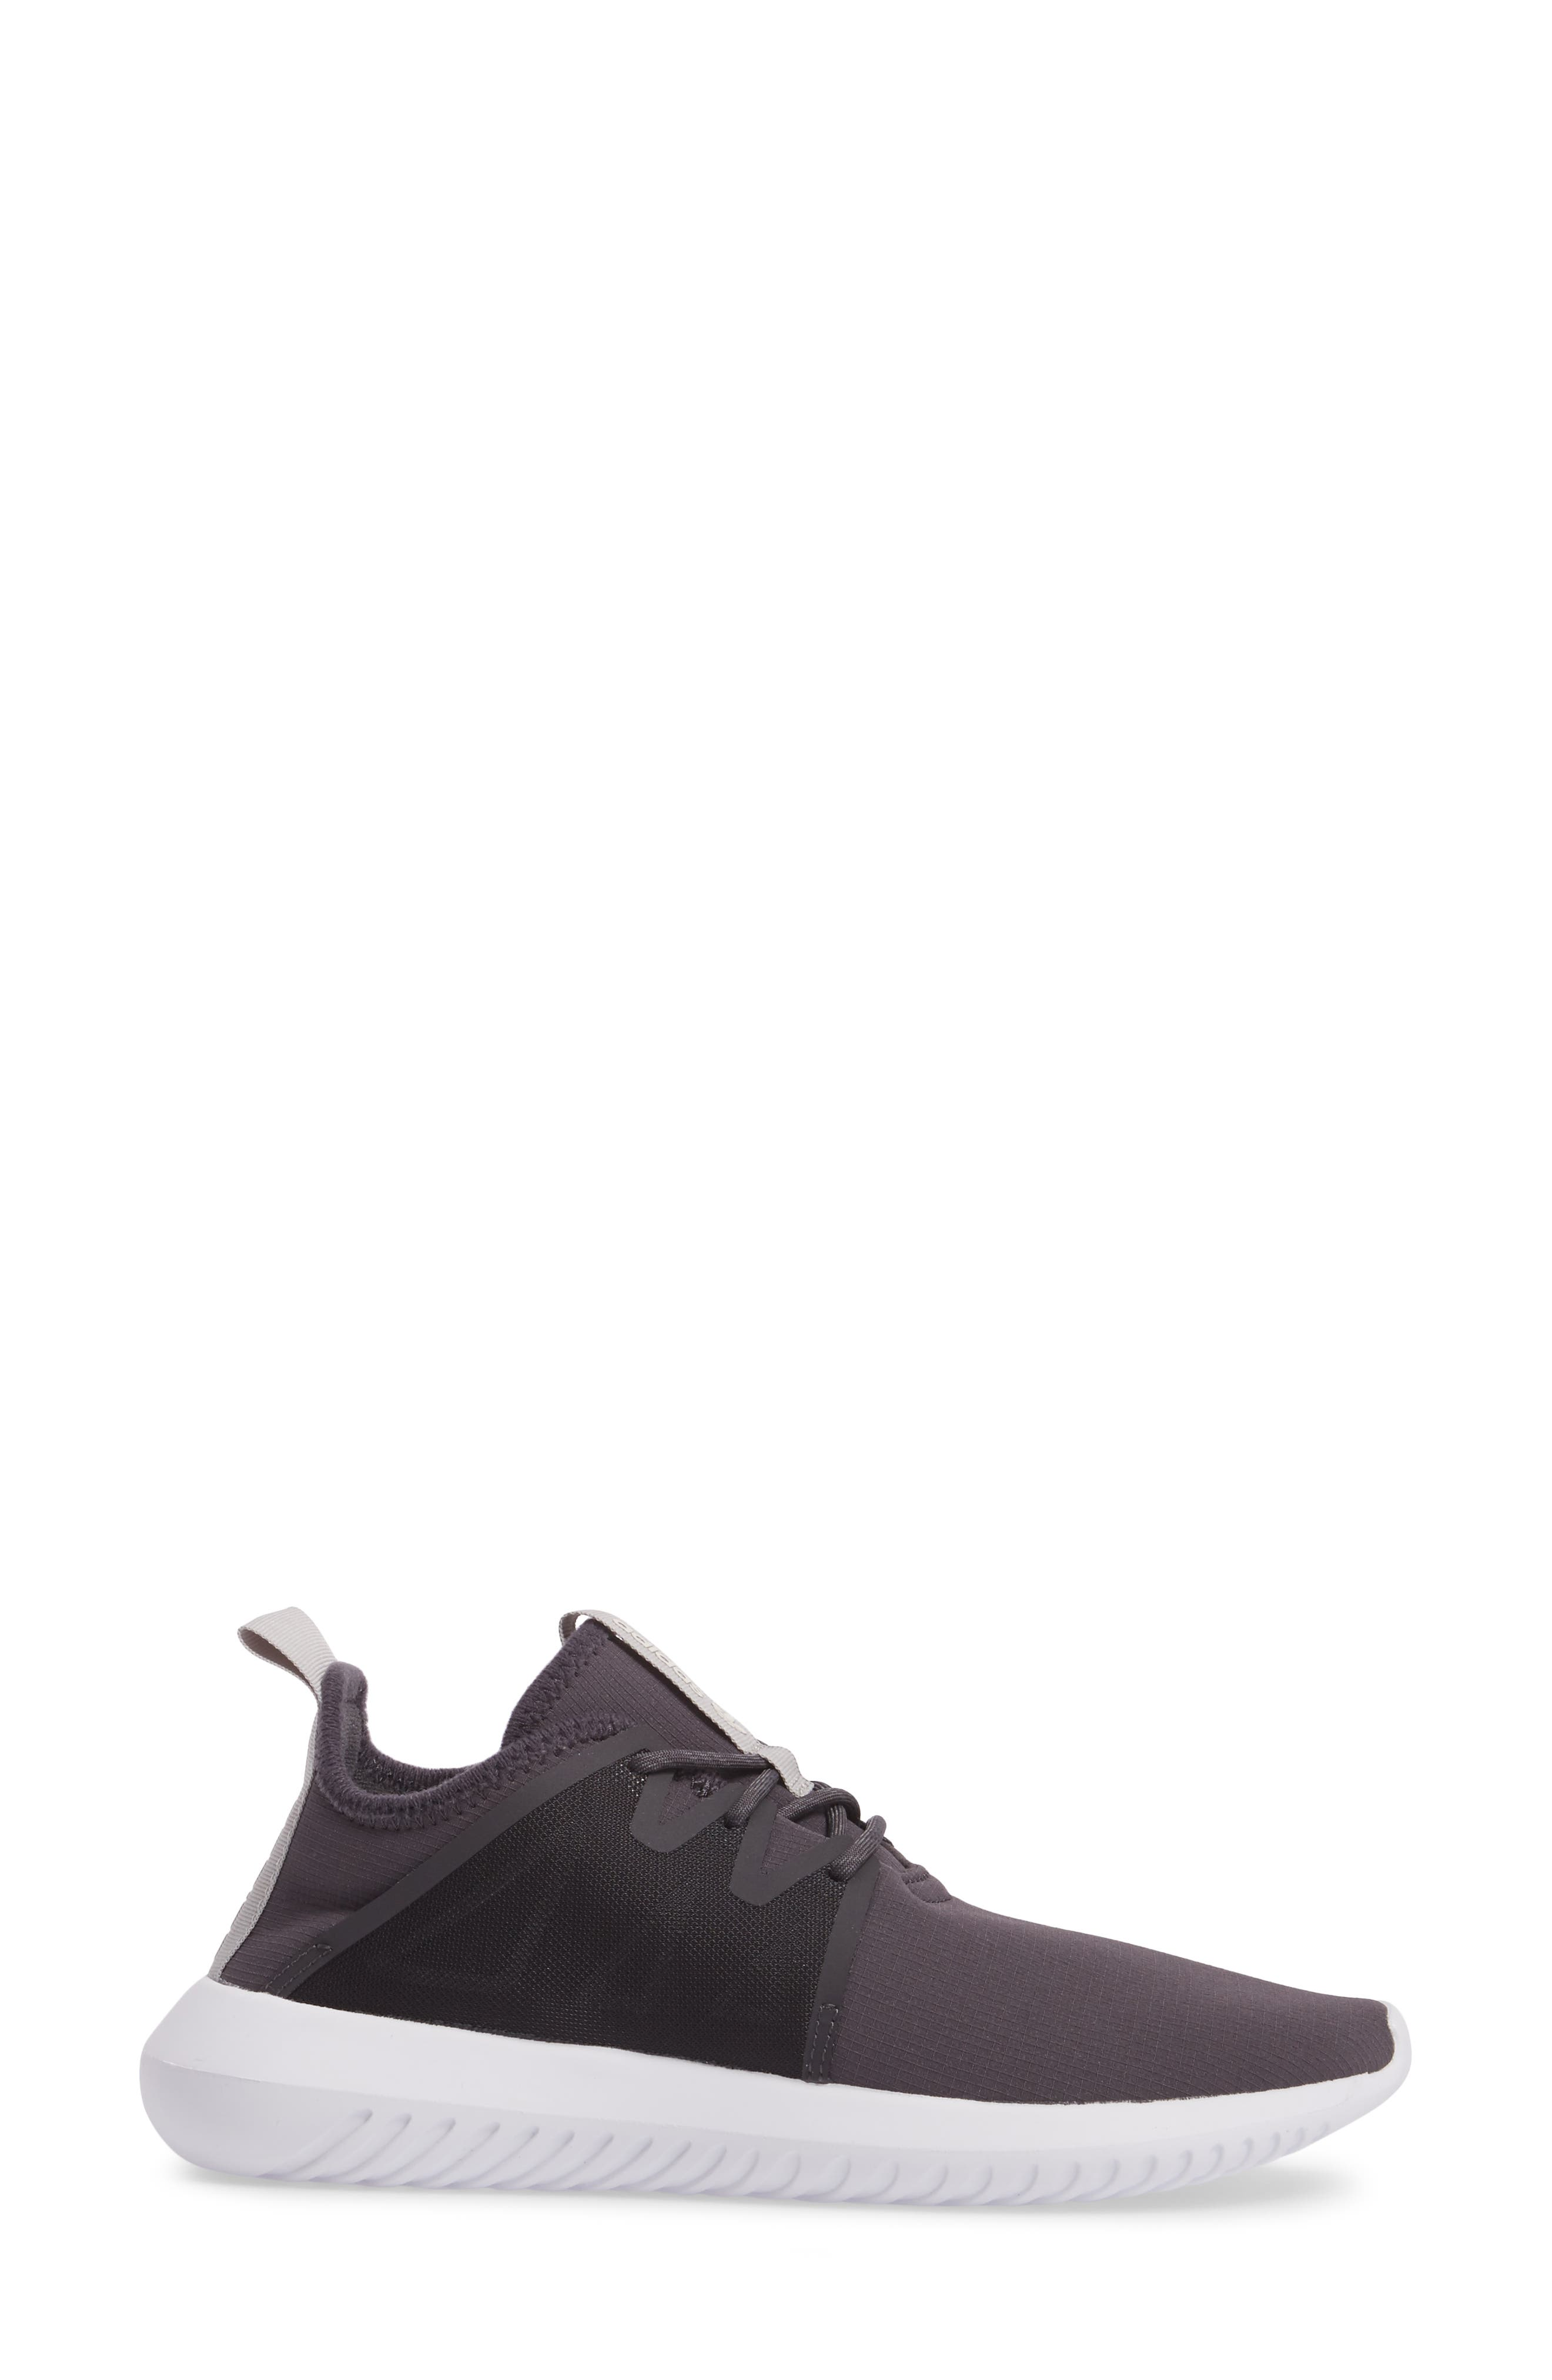 Tubular Viral 2 Sneaker,                             Alternate thumbnail 3, color,                             005